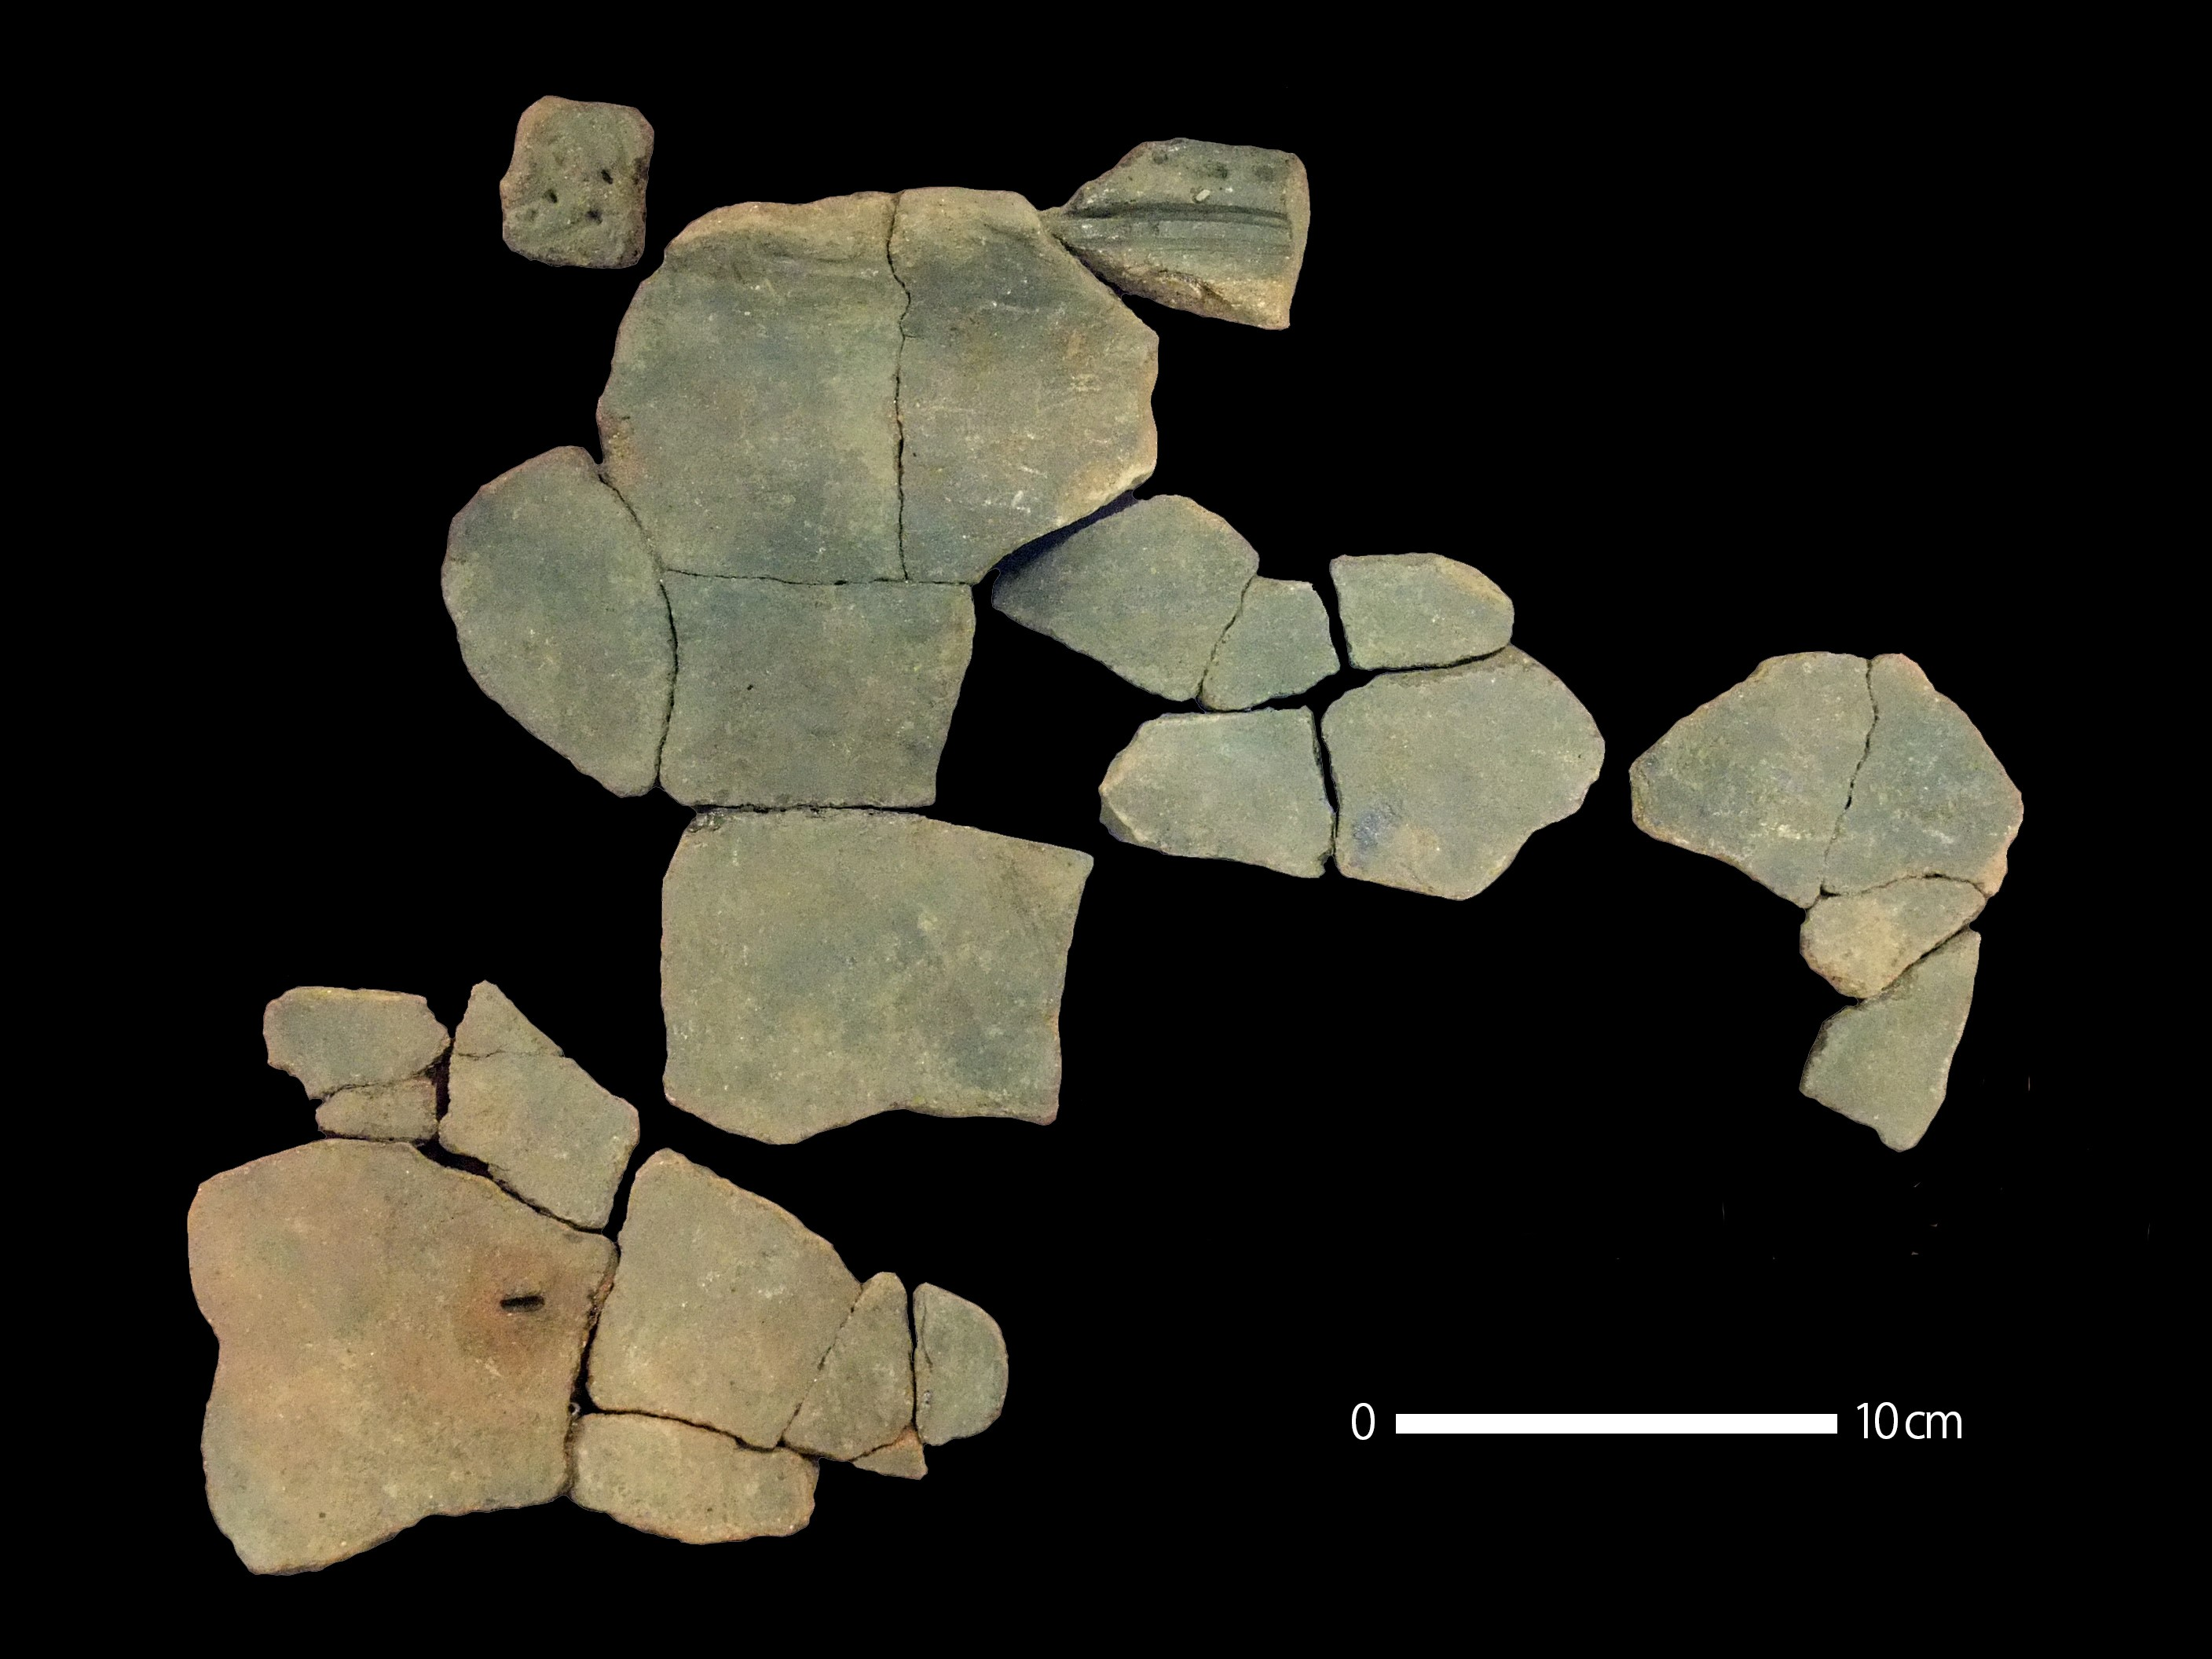 Pottery pieces that had cockroach egg impressions. Image credit: Prof. Hiroki Obata